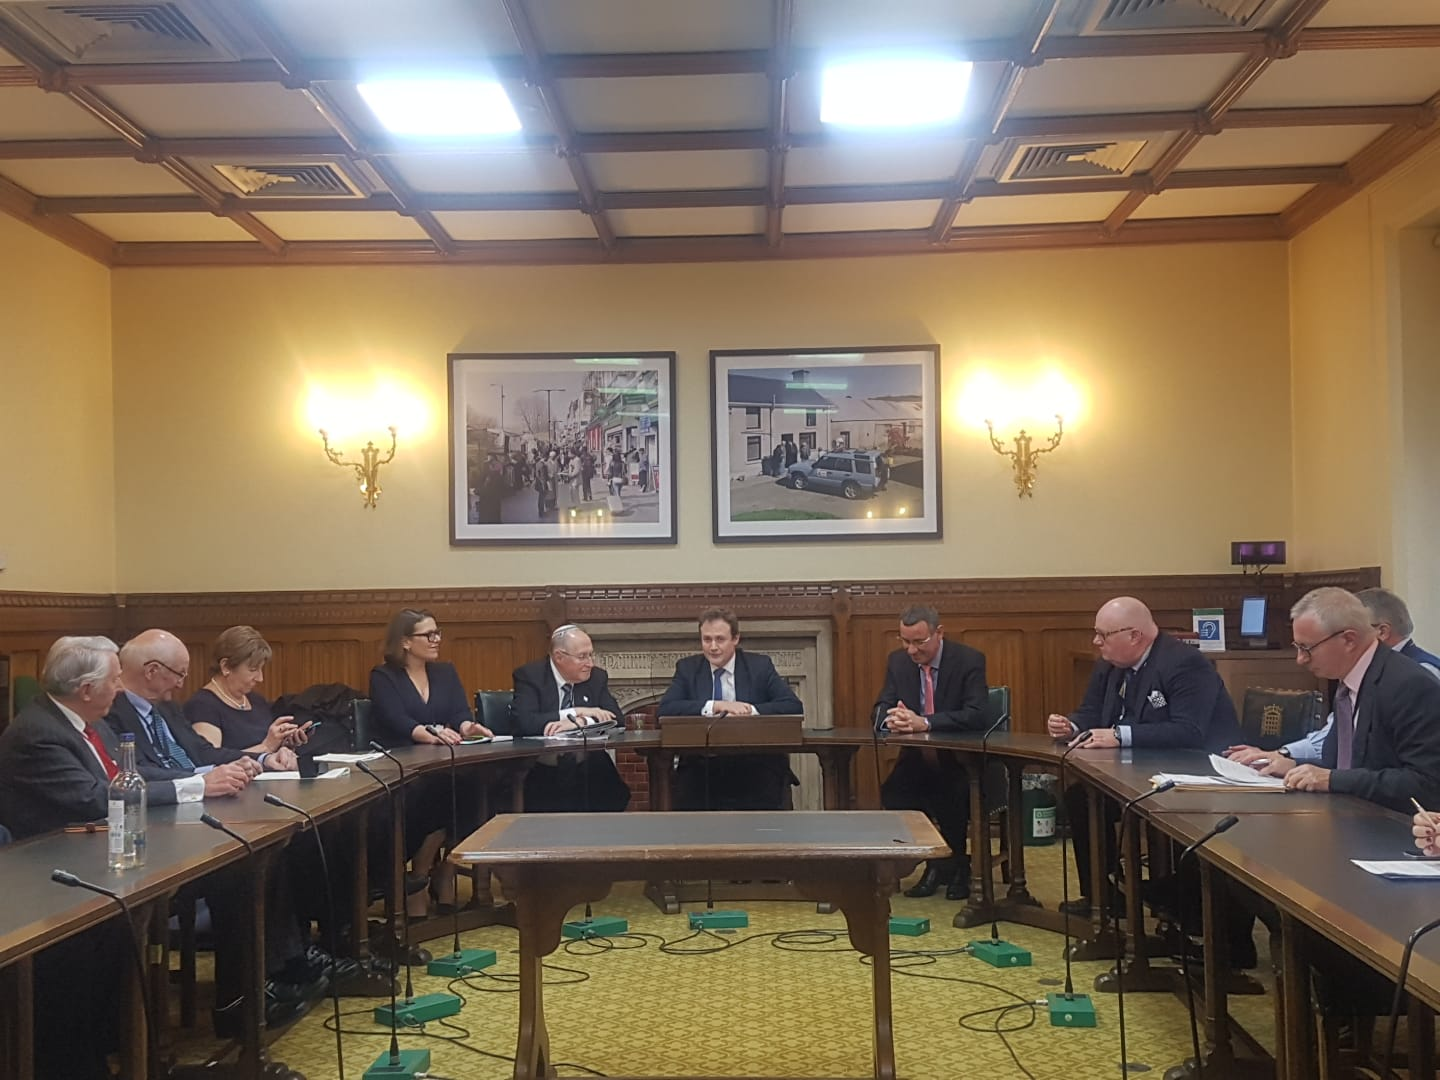 Former Vice President of Israel's Supreme Court addresses parliamentarians